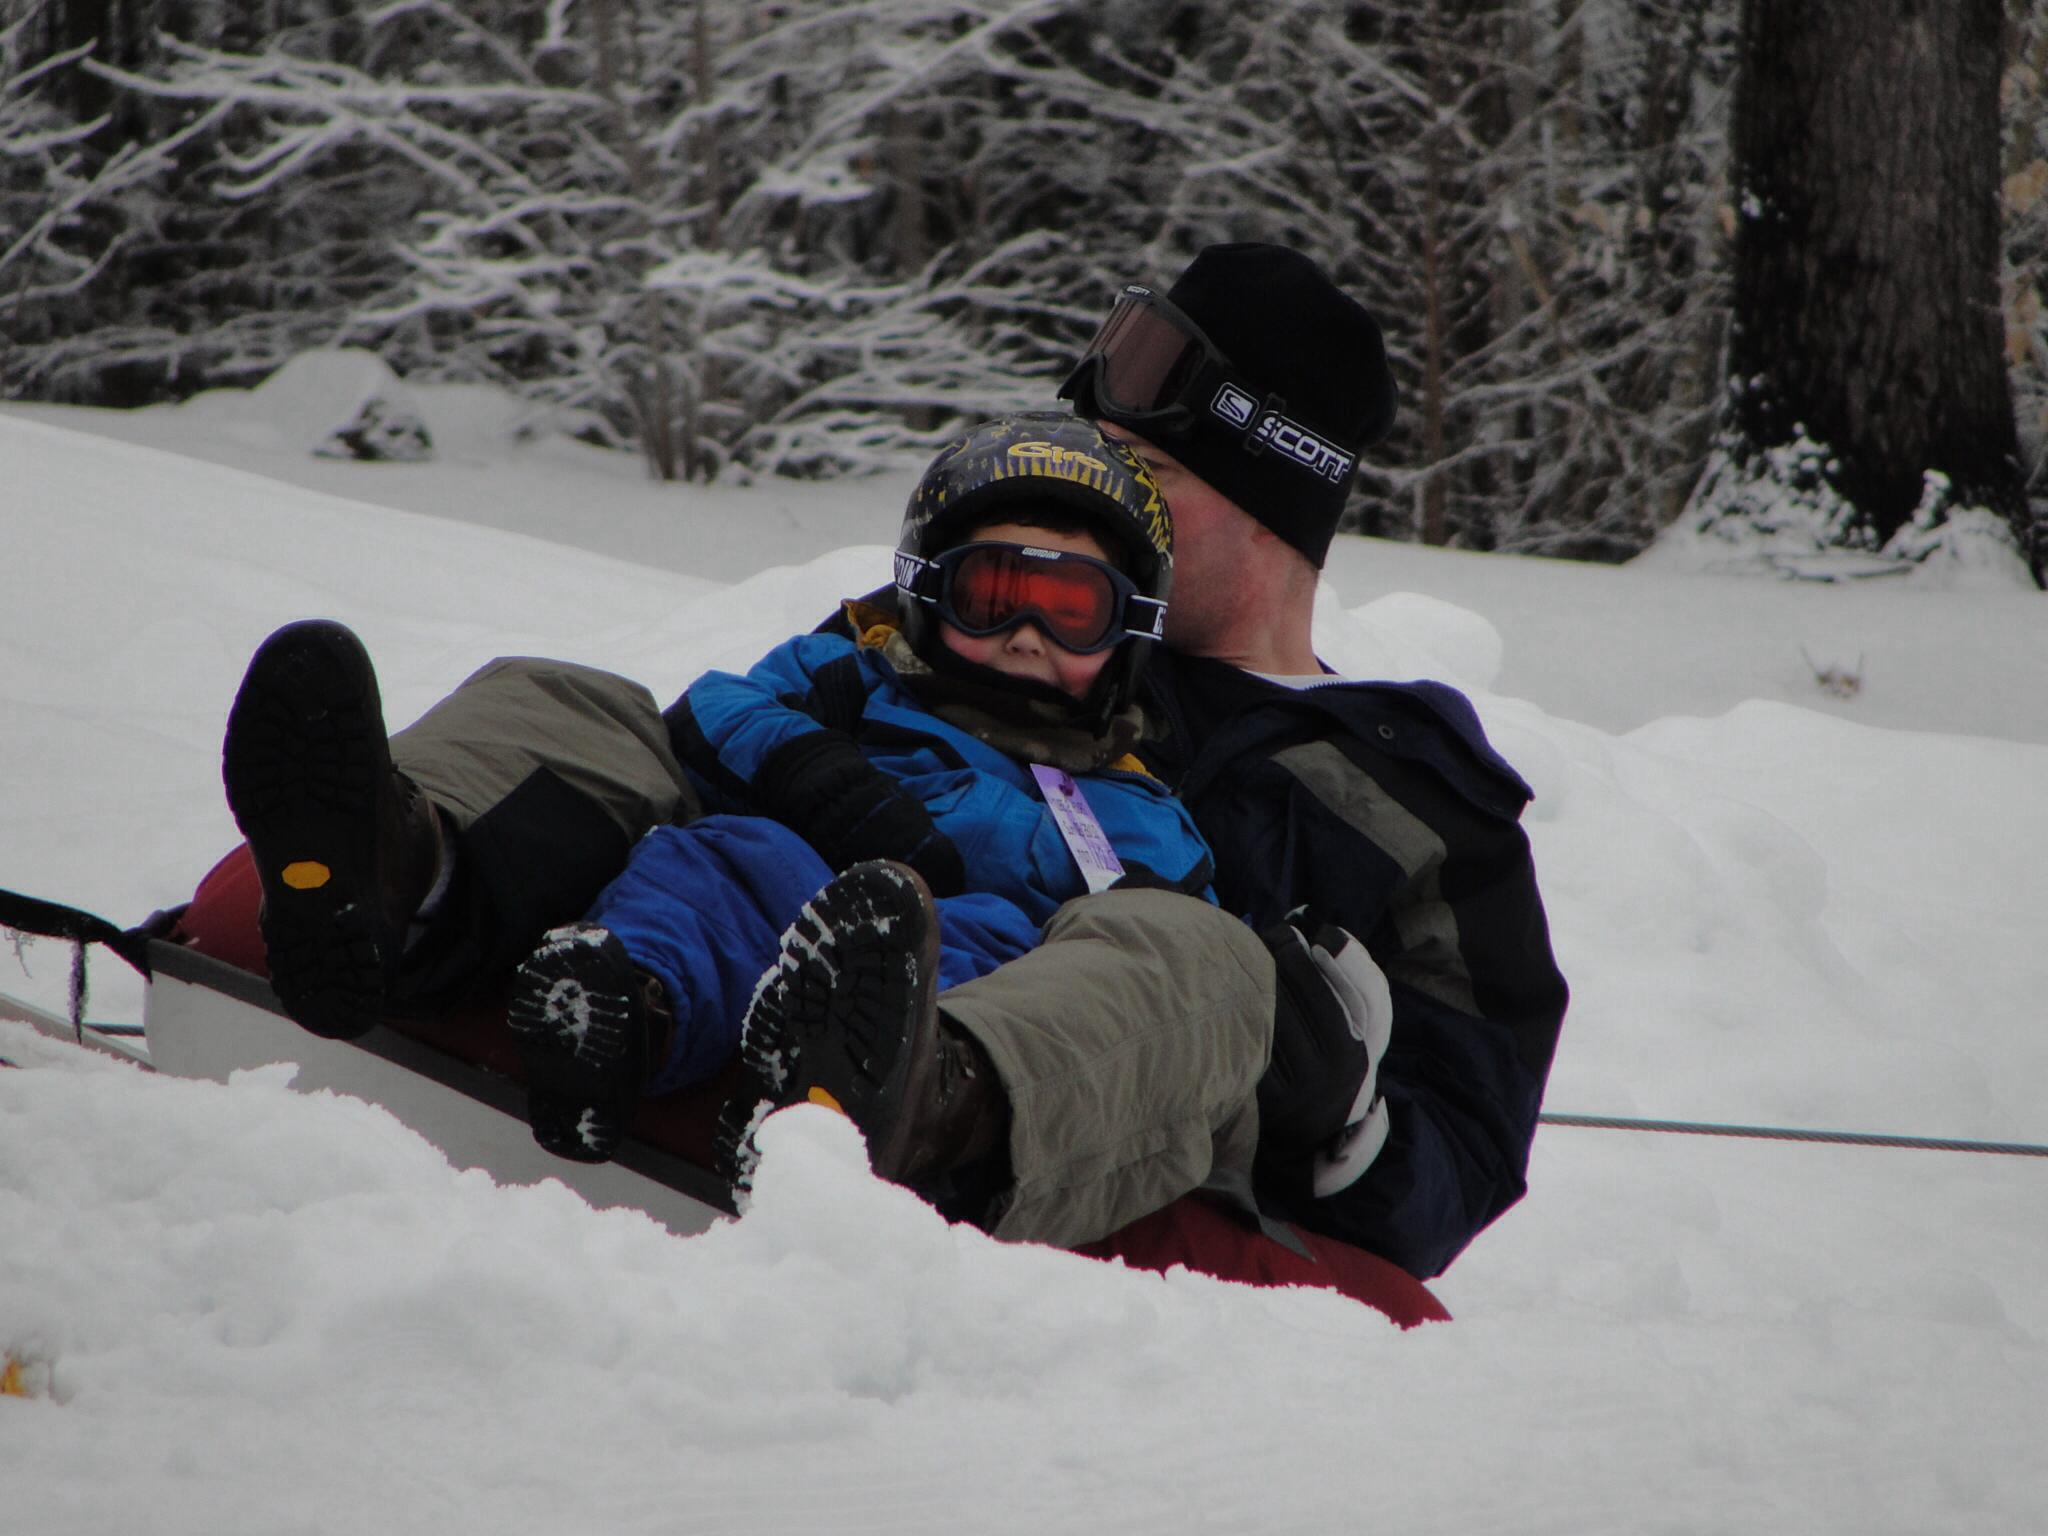 Dads take you down the big sled hill | Sheknows.com